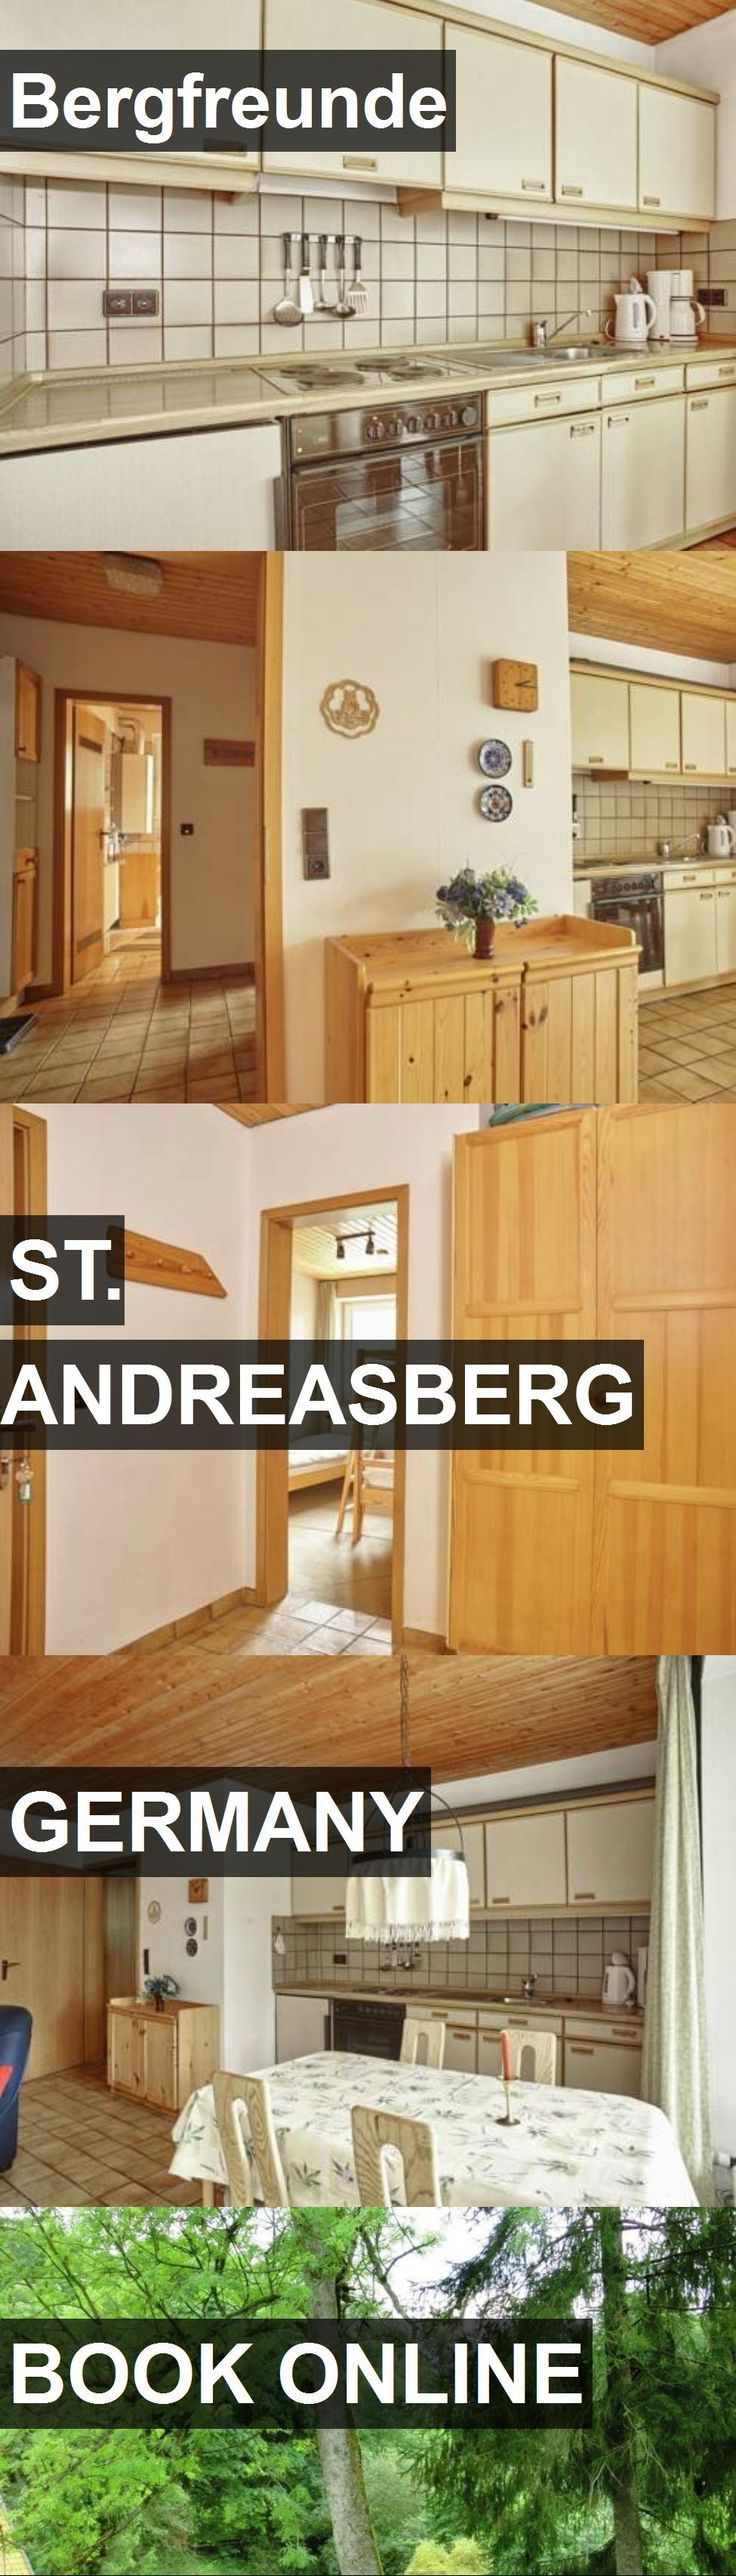 Hotel Bergfreunde in St. Andreasberg, Germany. For more information, photos, reviews and best prices please follow the link. #Germany #St.Andreasberg #hotel #travel #vacation